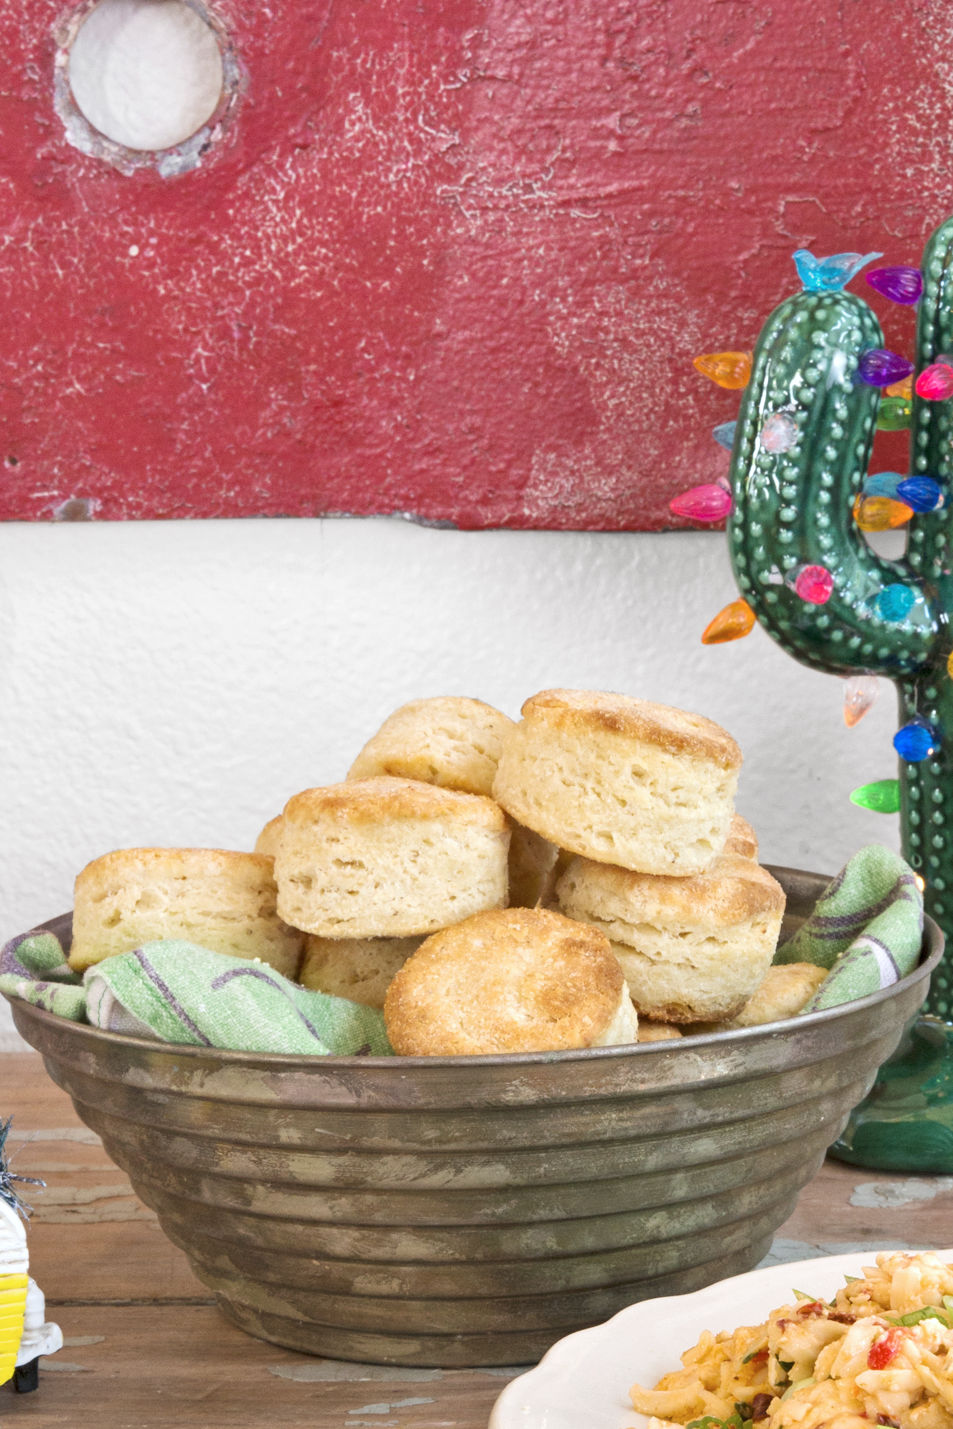 """<p>Flaky masa biscuits go perfectly with spicy pimento cheese or cheesy grits.</p><p><strong><a href=""""https://www.countryliving.com/food-drinks/recipes/a45491/masa-biscuits-recipe/"""" rel=""""nofollow noopener"""" target=""""_blank"""" data-ylk=""""slk:Get the recipe"""" class=""""link rapid-noclick-resp"""">Get the recipe</a>.</strong> </p>"""